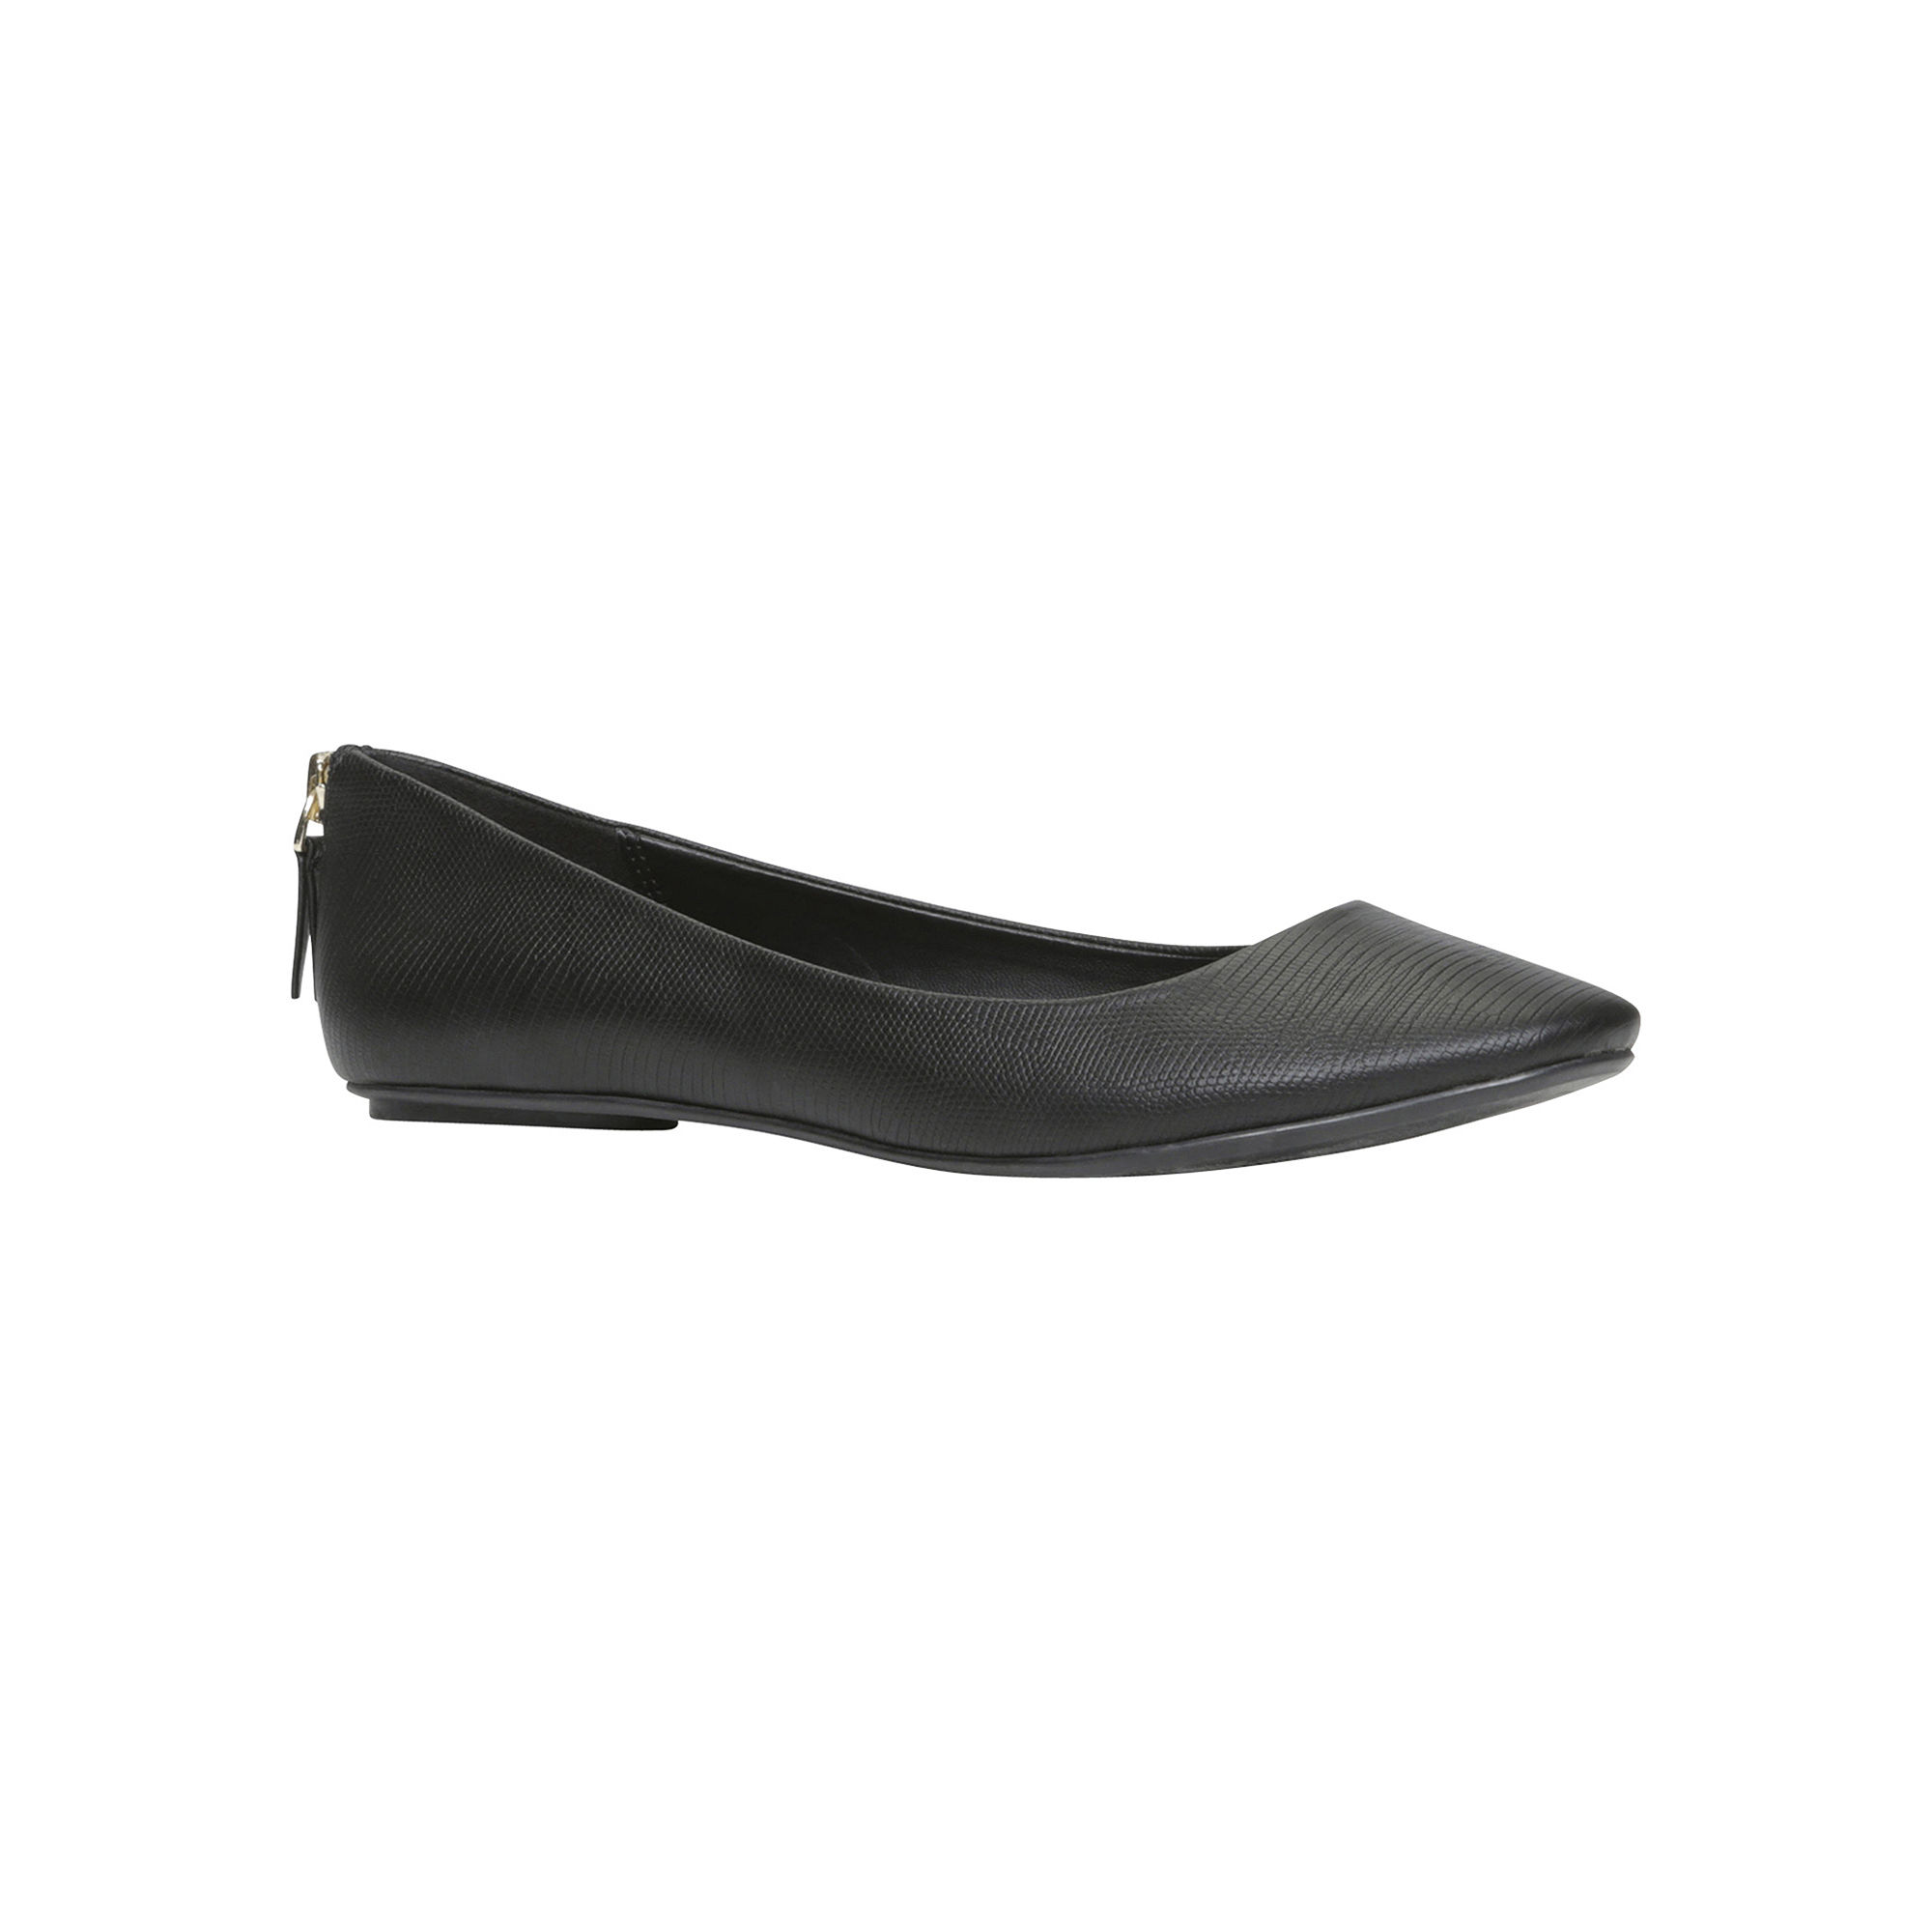 5455a400f7d9 ... UPC 682474305166 product image for Call It Spring Chaella Ballet Flats